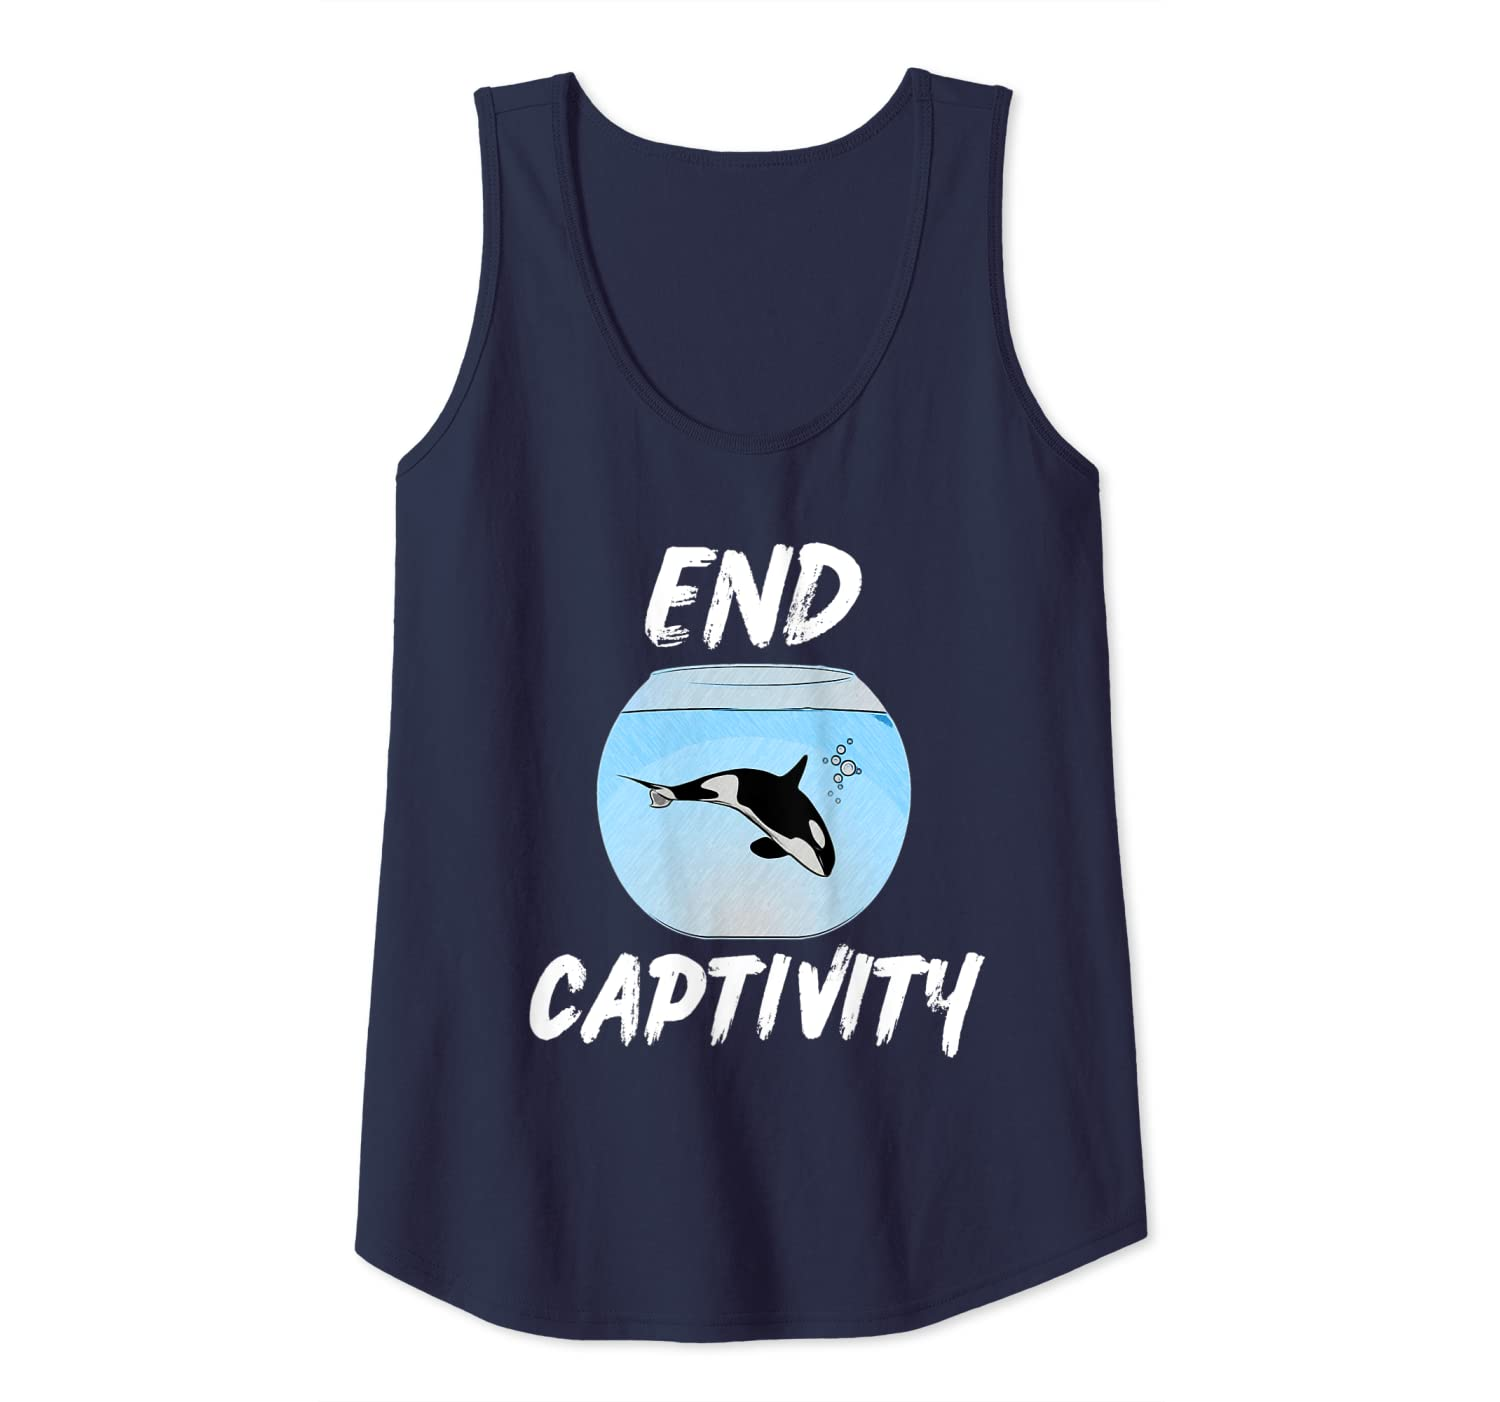 End Captivity Shirt Free the Orca Whales Tank Top